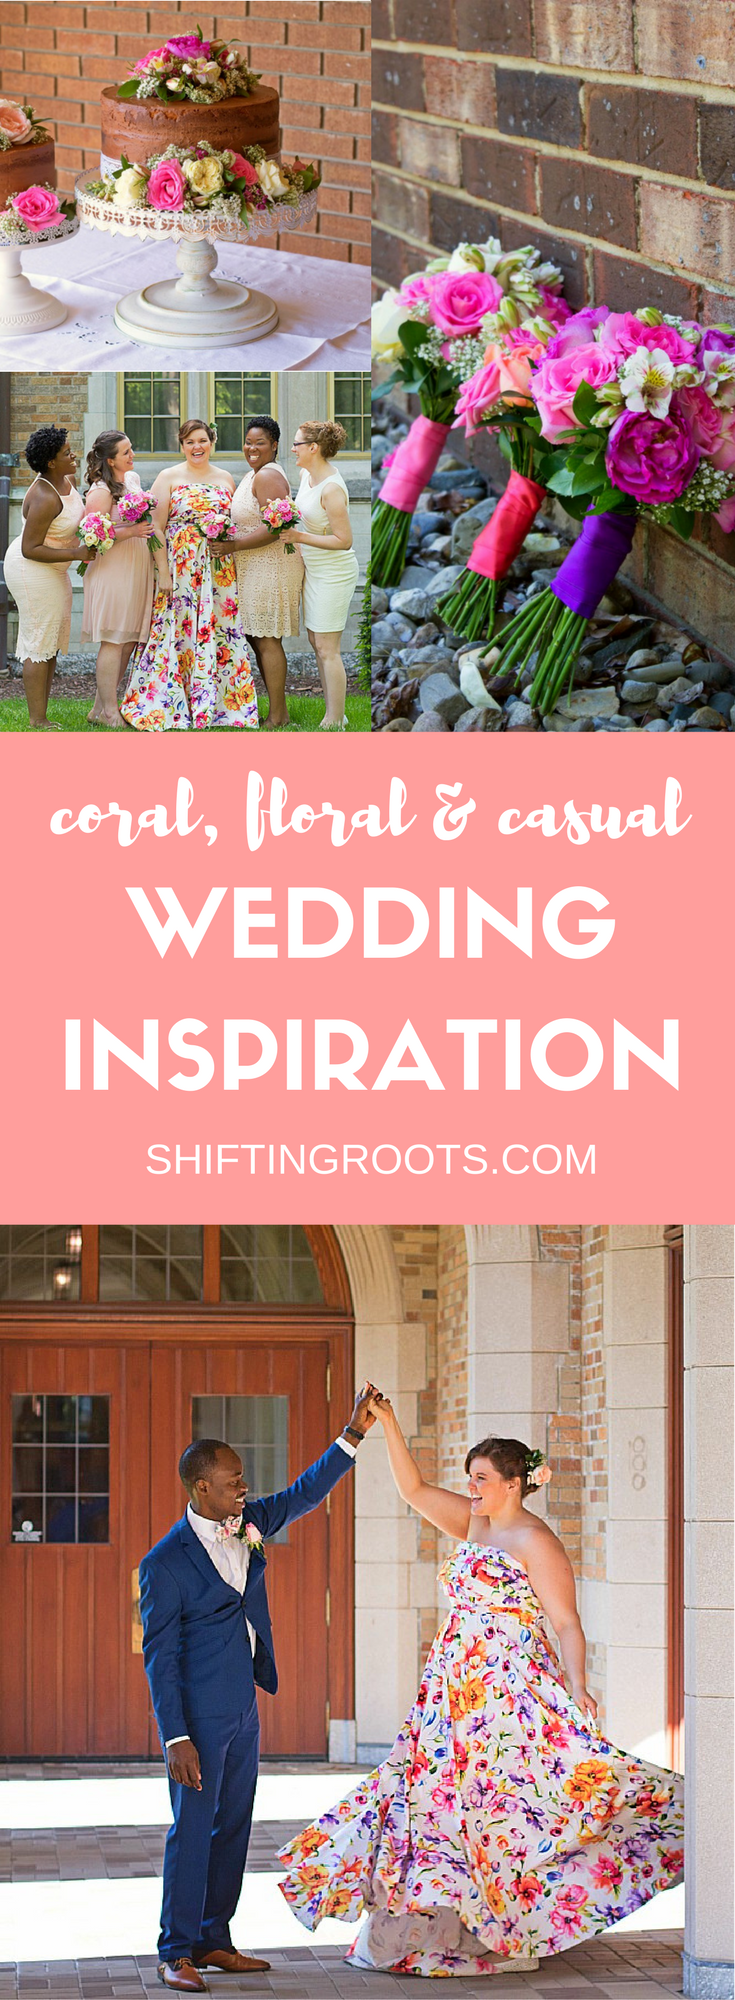 Have you ever been to a perfect wedding? While that may not exist, these nuptials came close!  Get inspired by this gorgeous blush pink, coral, navy blue, and floral spring wedding.